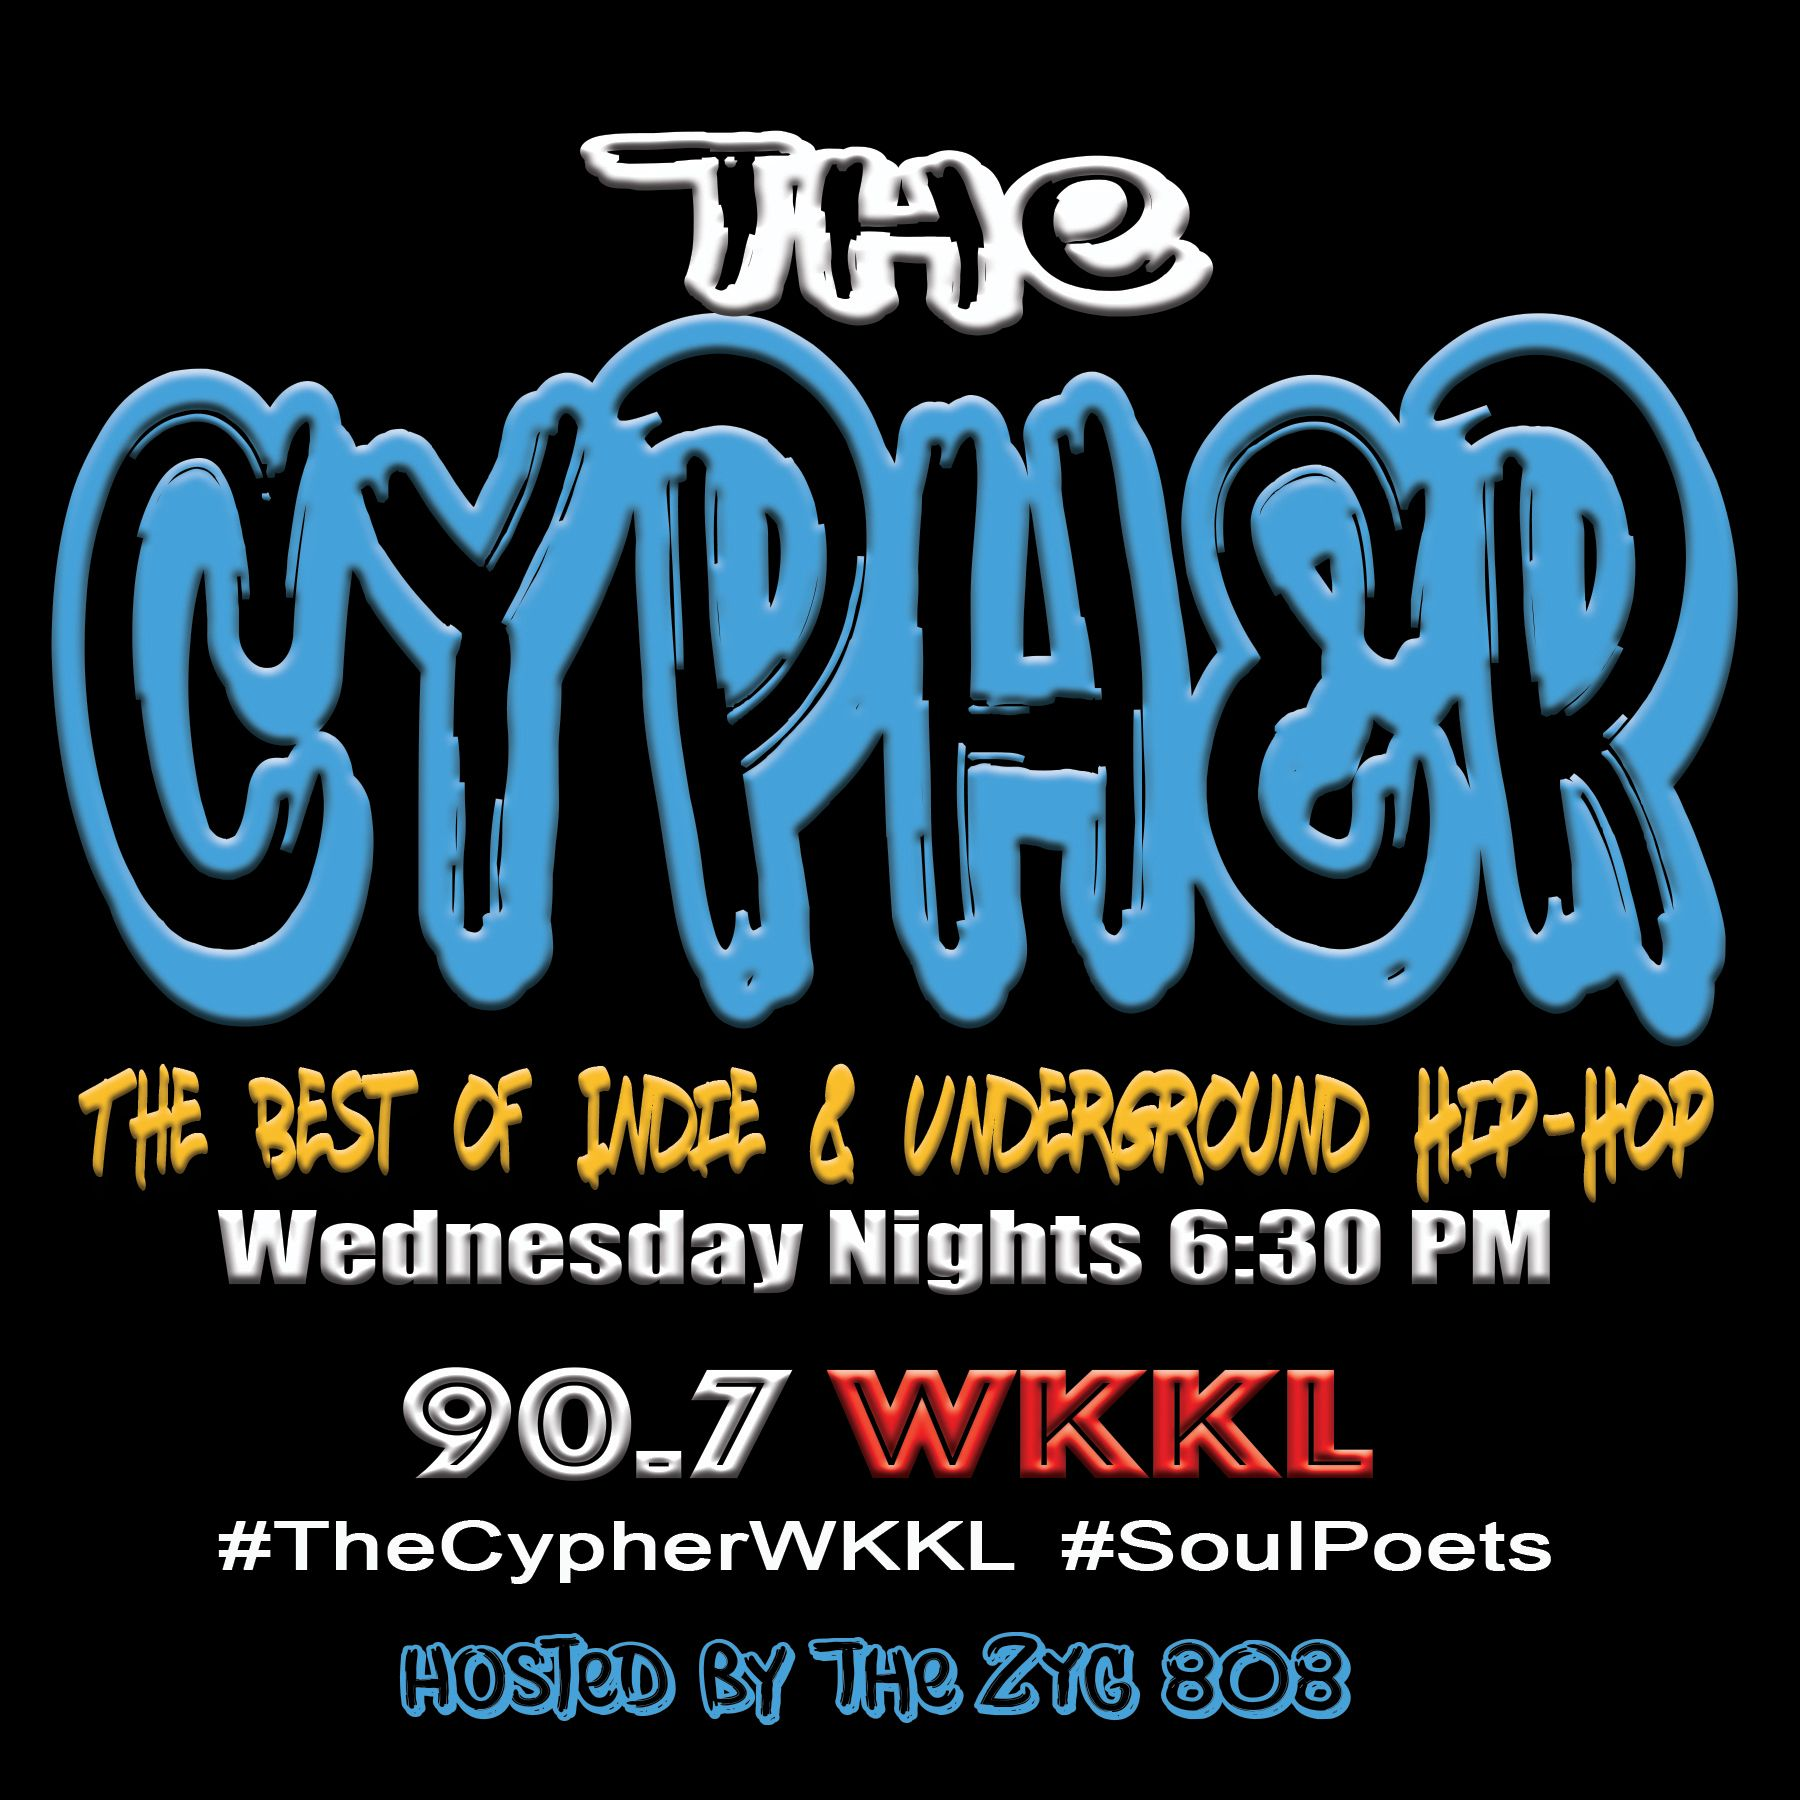 The CYPHER on 90.7 WKKL in Massachusetts is a show hosted by The ZYG 808